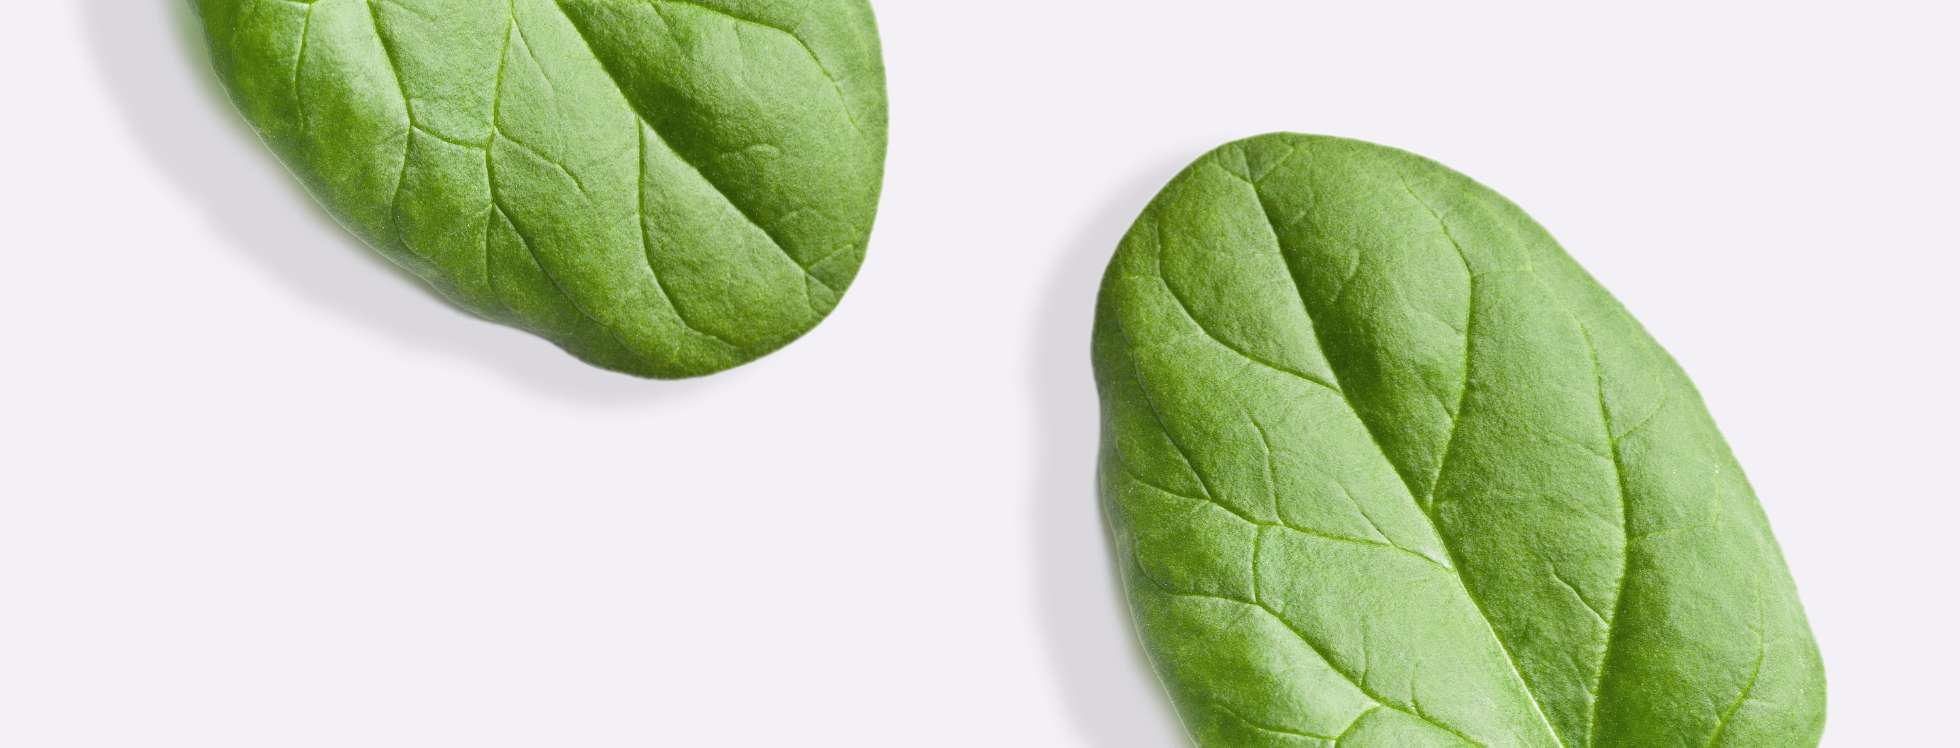 Spinach leaves on grey background